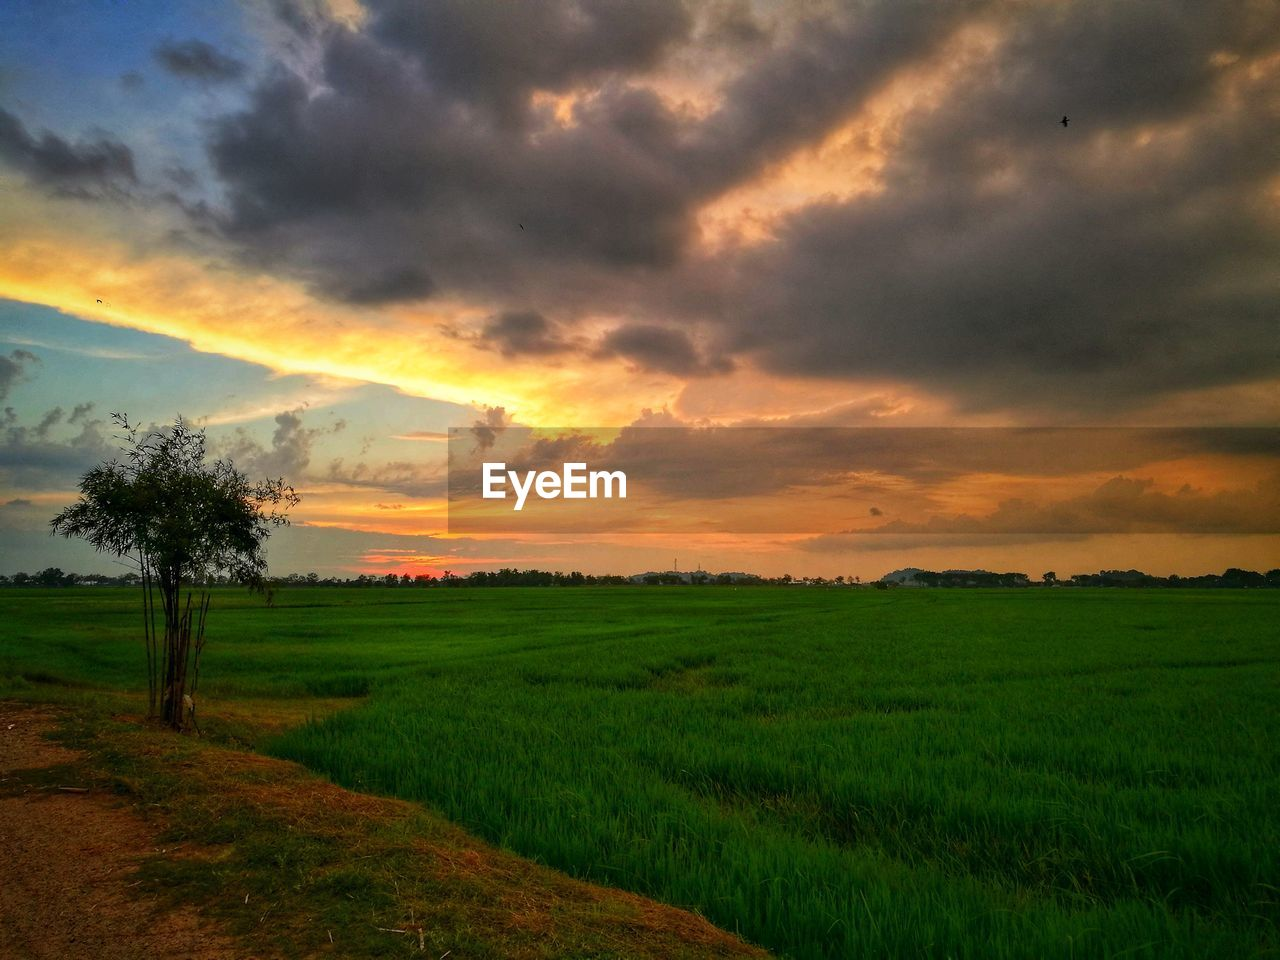 landscape, field, sunset, agriculture, nature, scenics, beauty in nature, farm, tranquil scene, tranquility, rural scene, cloud - sky, growth, sky, green color, no people, grass, rice paddy, outdoors, tree, day